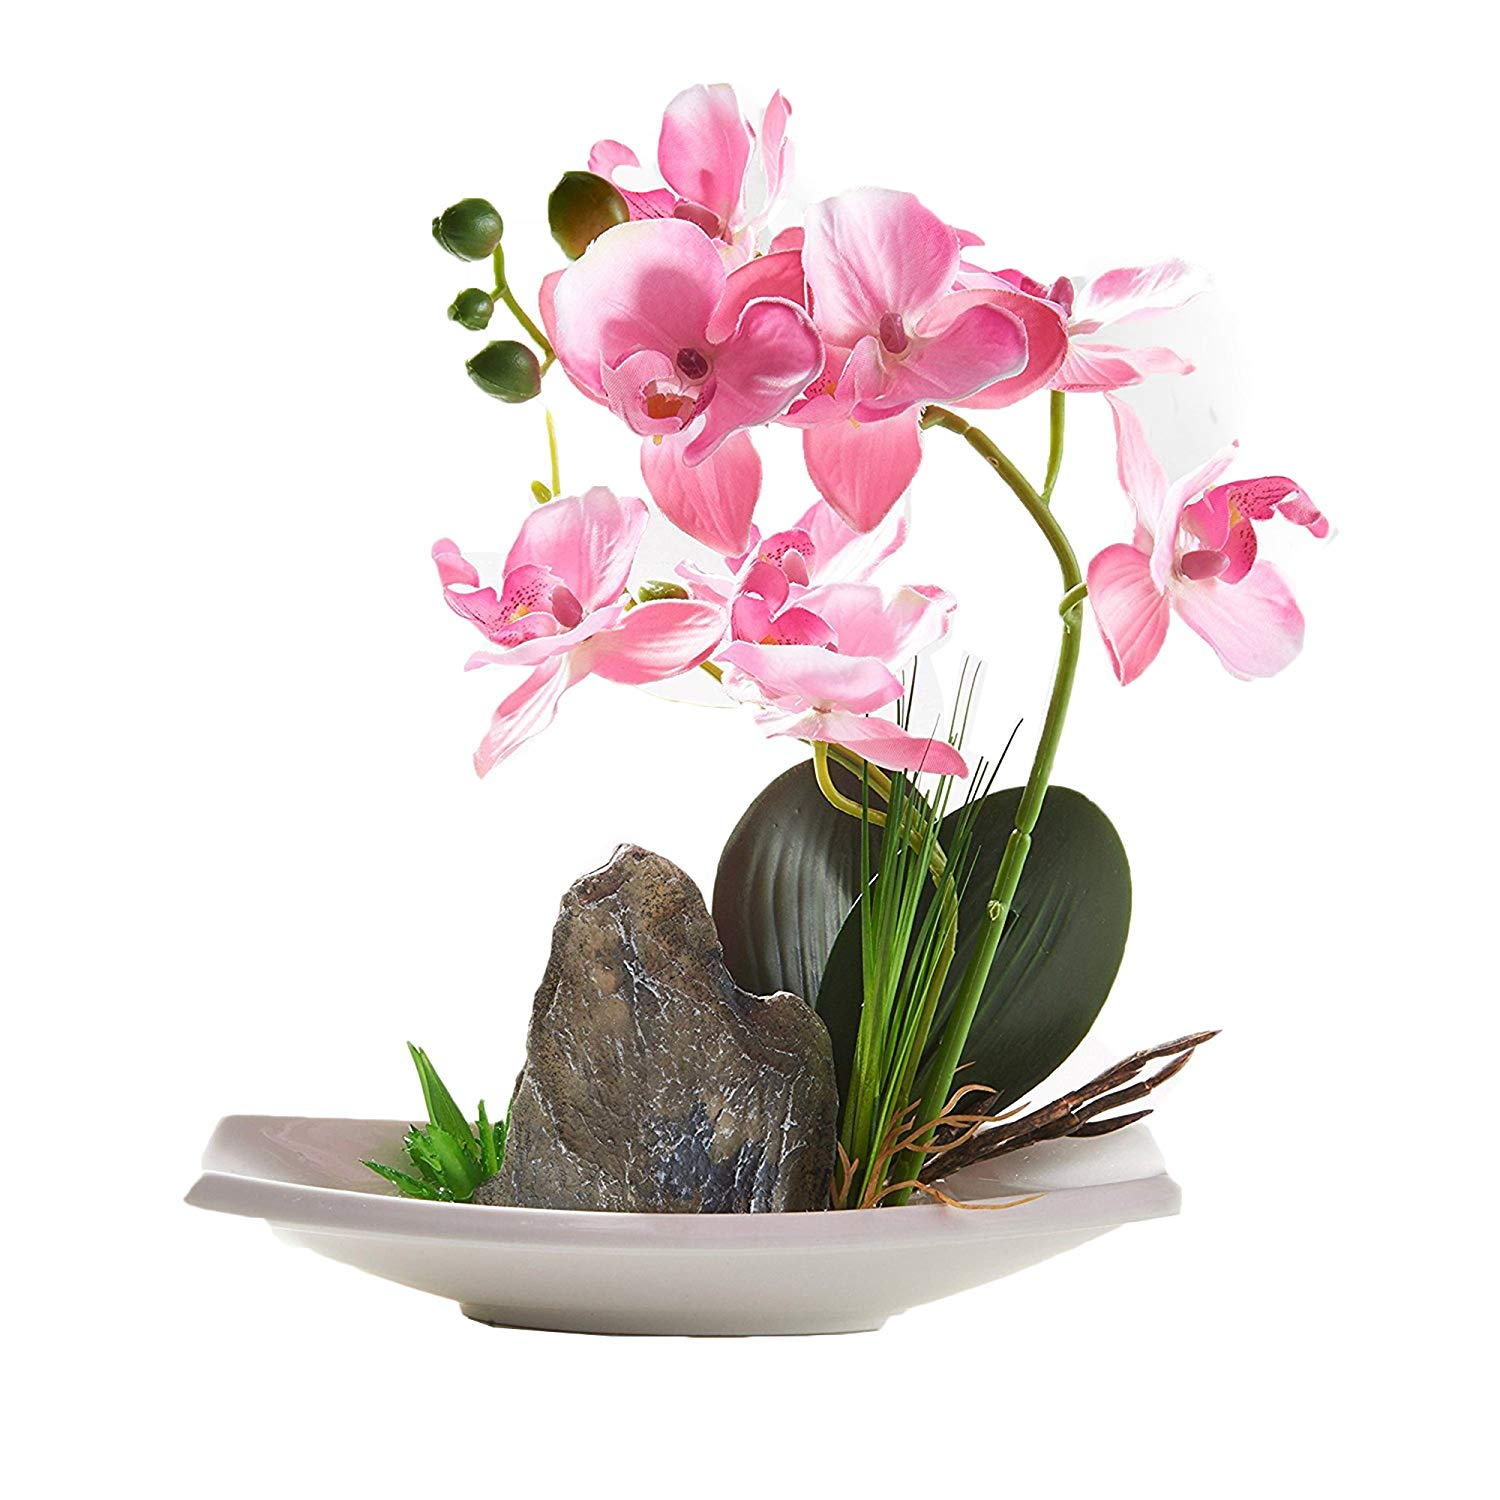 BeautiLife Blooming Orchid Artificial Flower Arrangements Blooming Flower Bonsai Rockery Series in vase for Home Wedding Party Office Dcoration